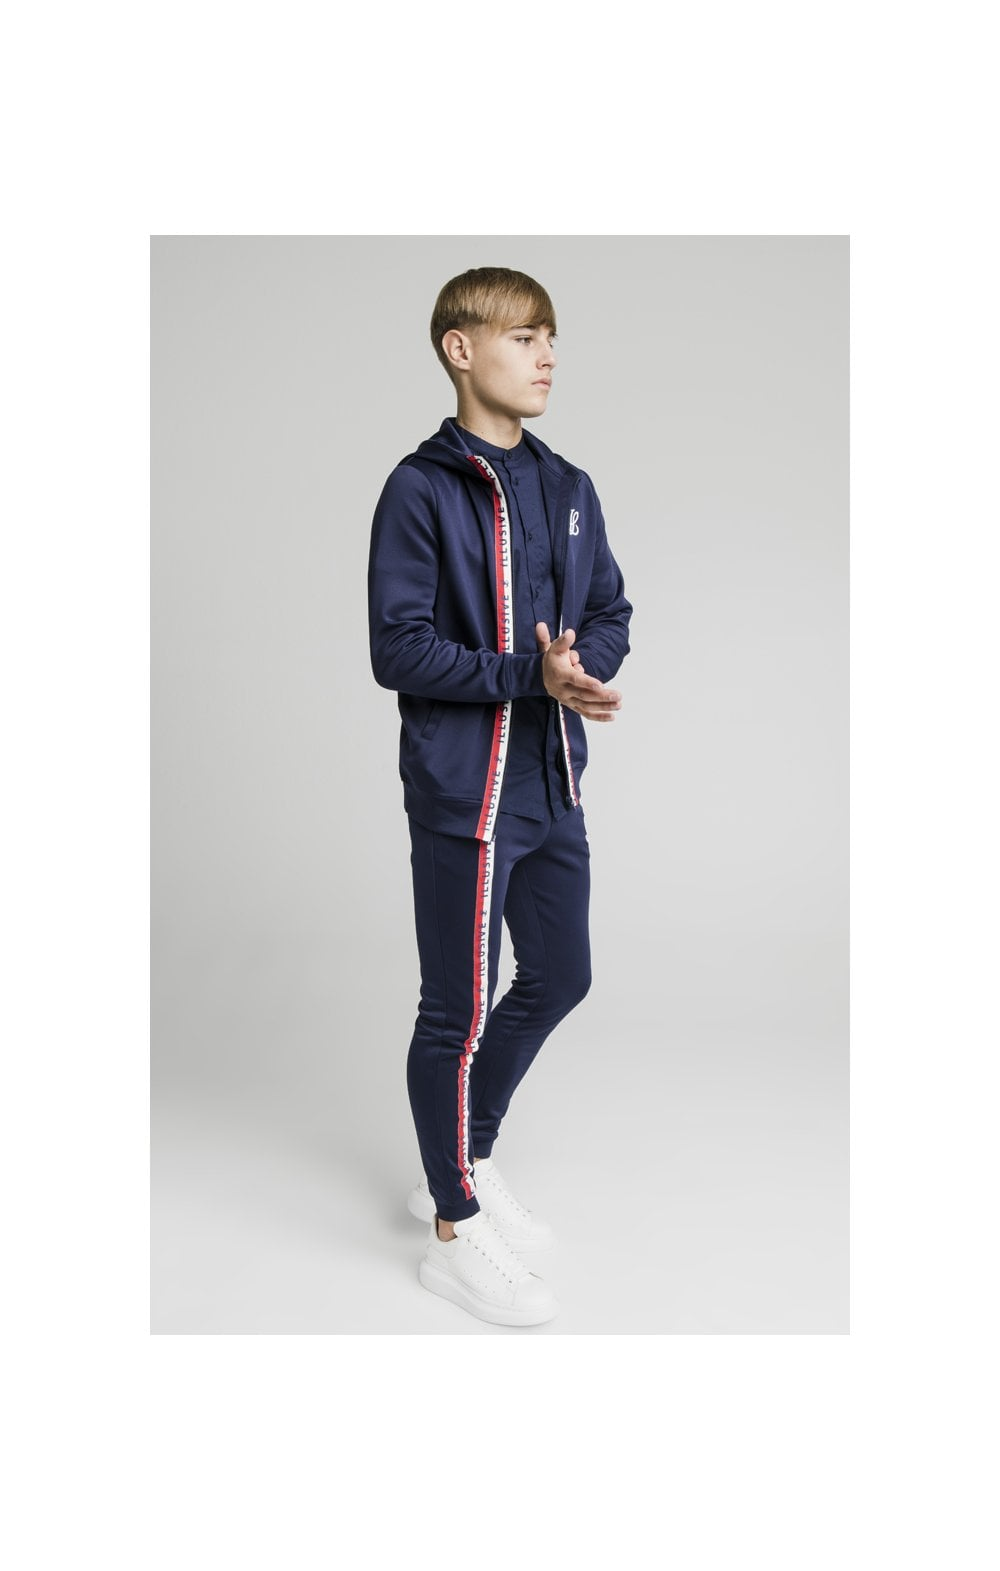 Illusive London Central Tape Zip Through Hoodie - Navy (5)